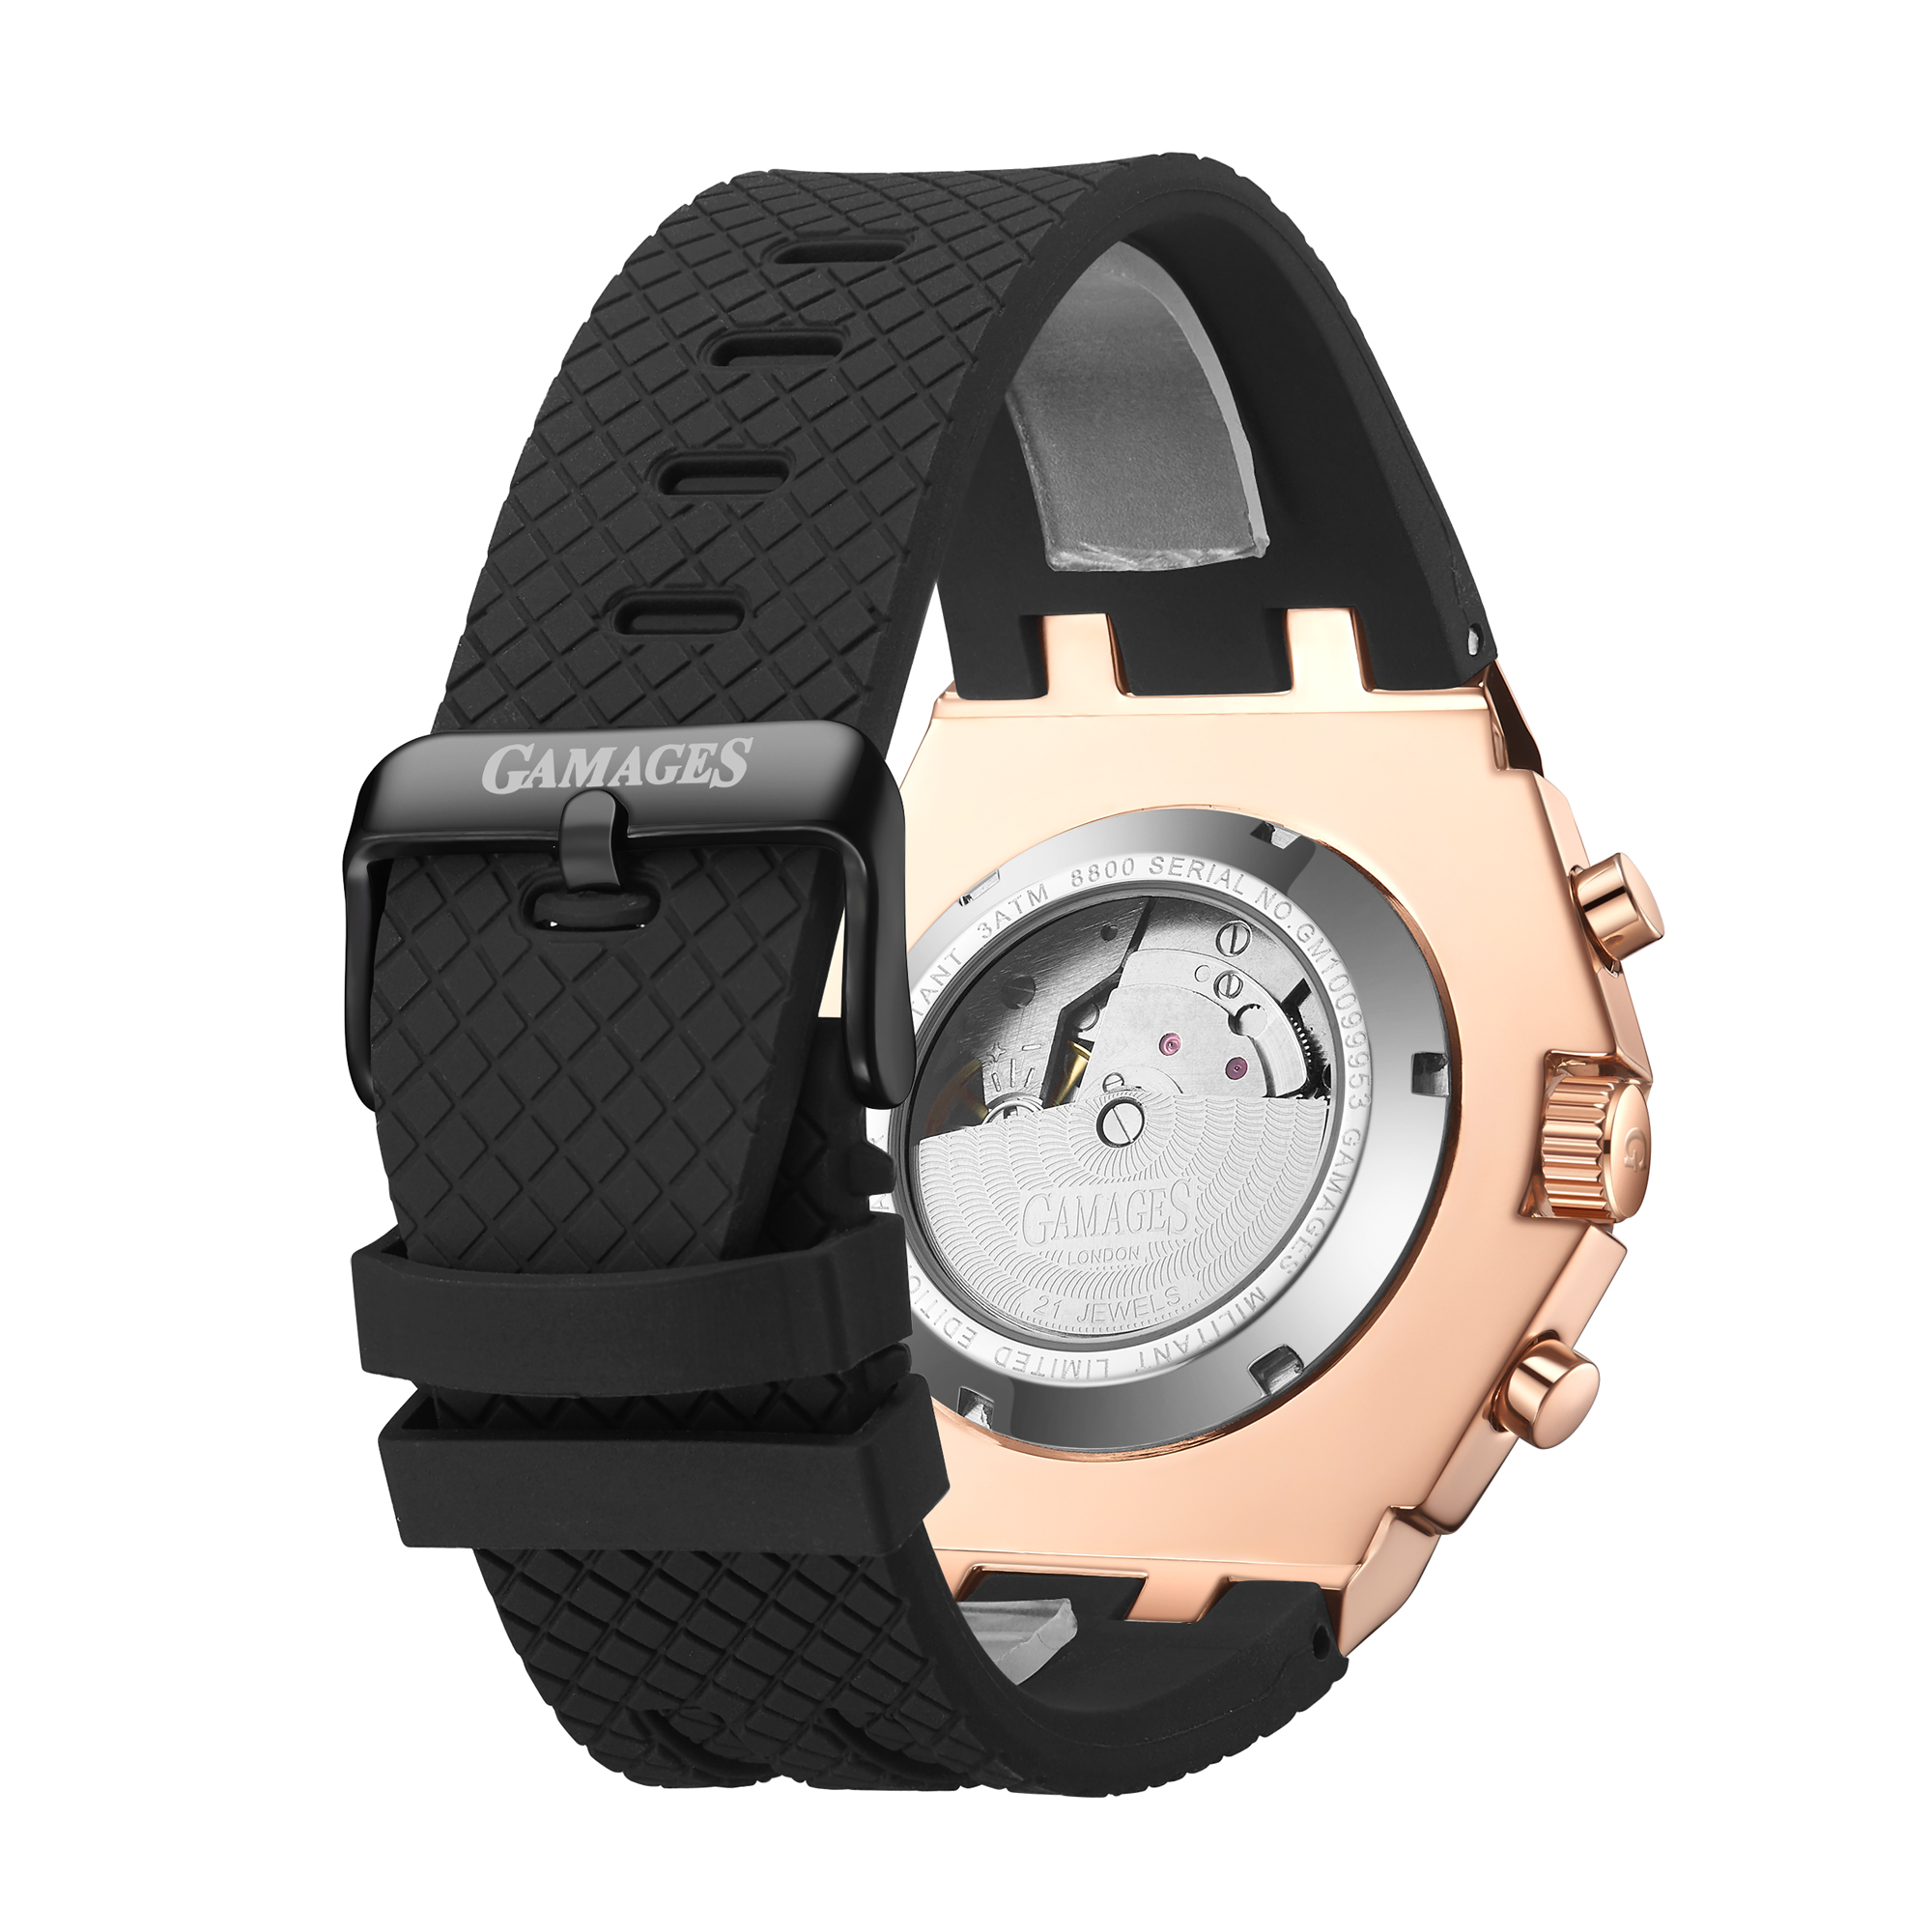 Limited Edition Hand Assembled GAMAGES Militant Automatic Rose – 5 Year Warranty & Free Delivery - Image 5 of 5